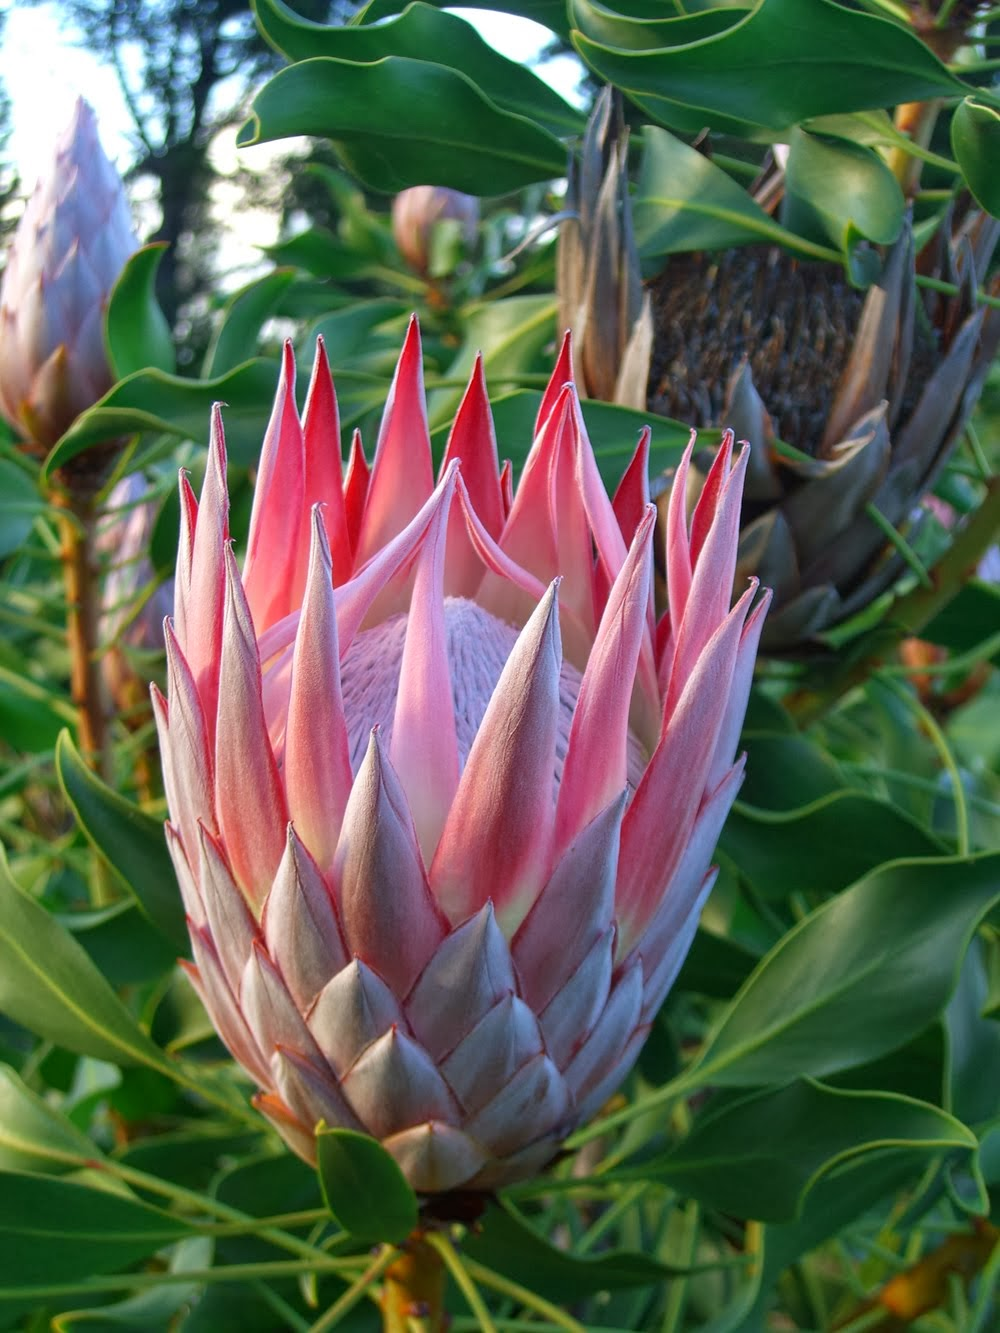 Come see our King Protea